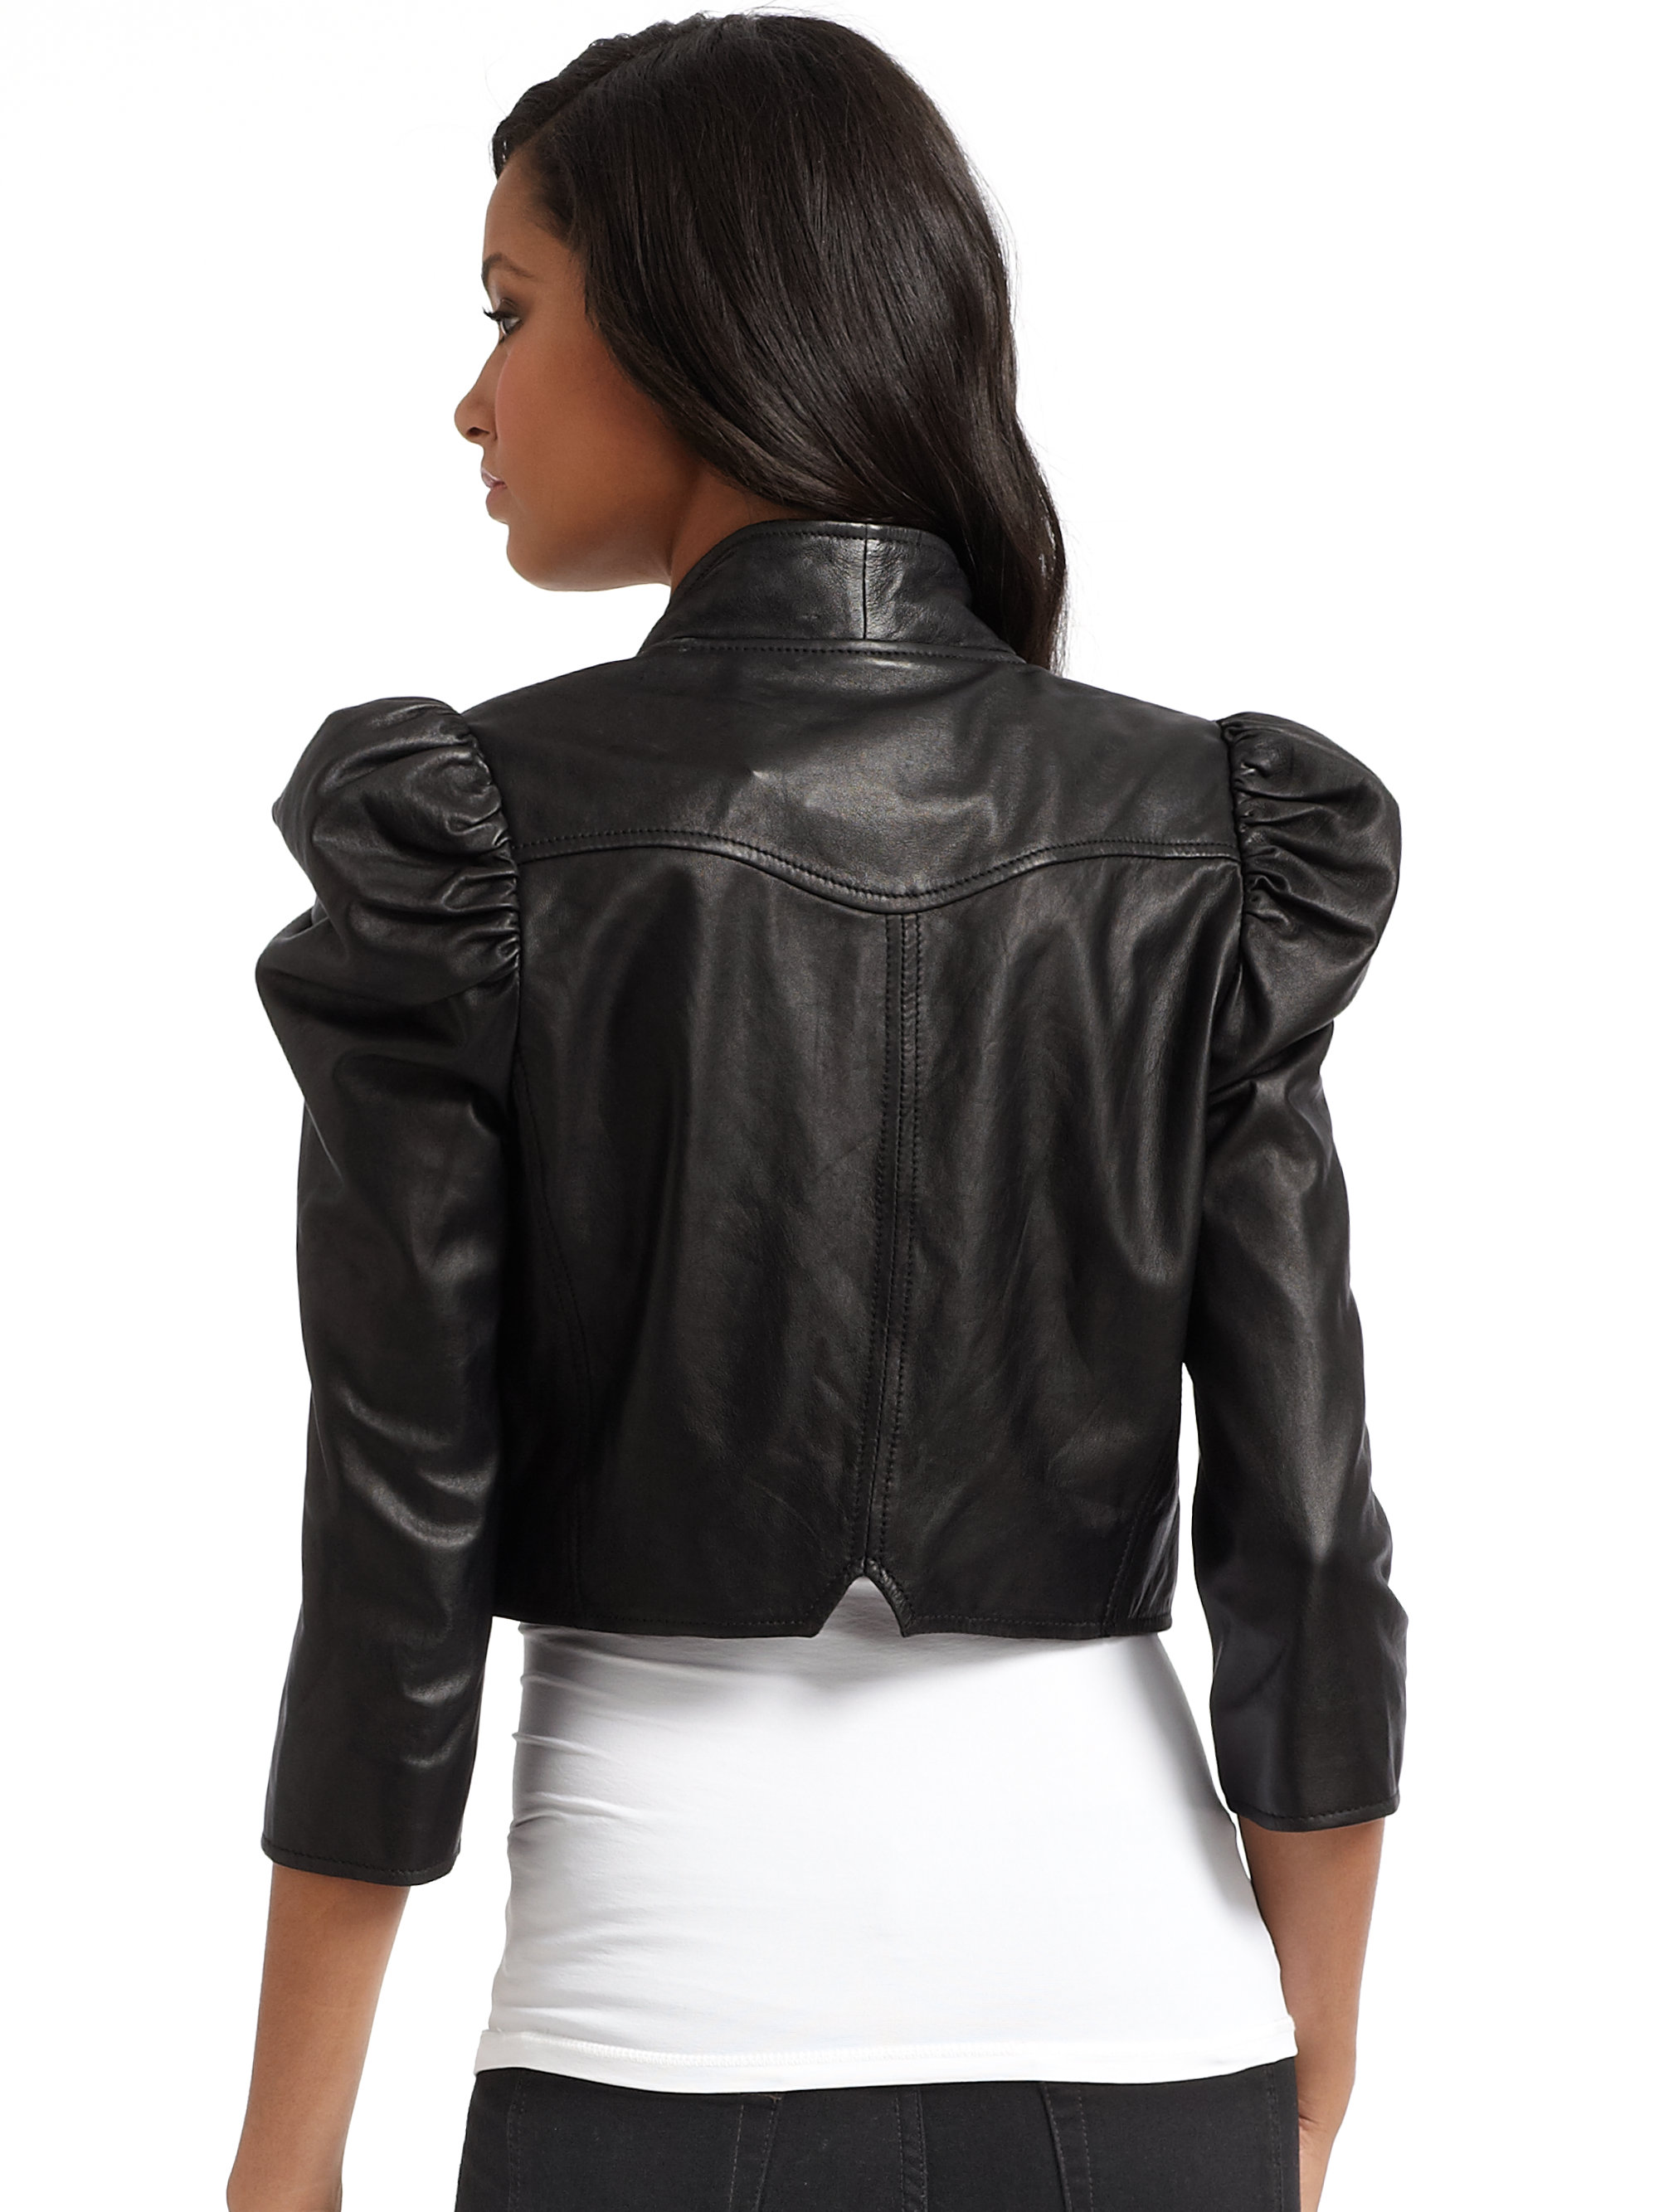 how to say leather jacket in french